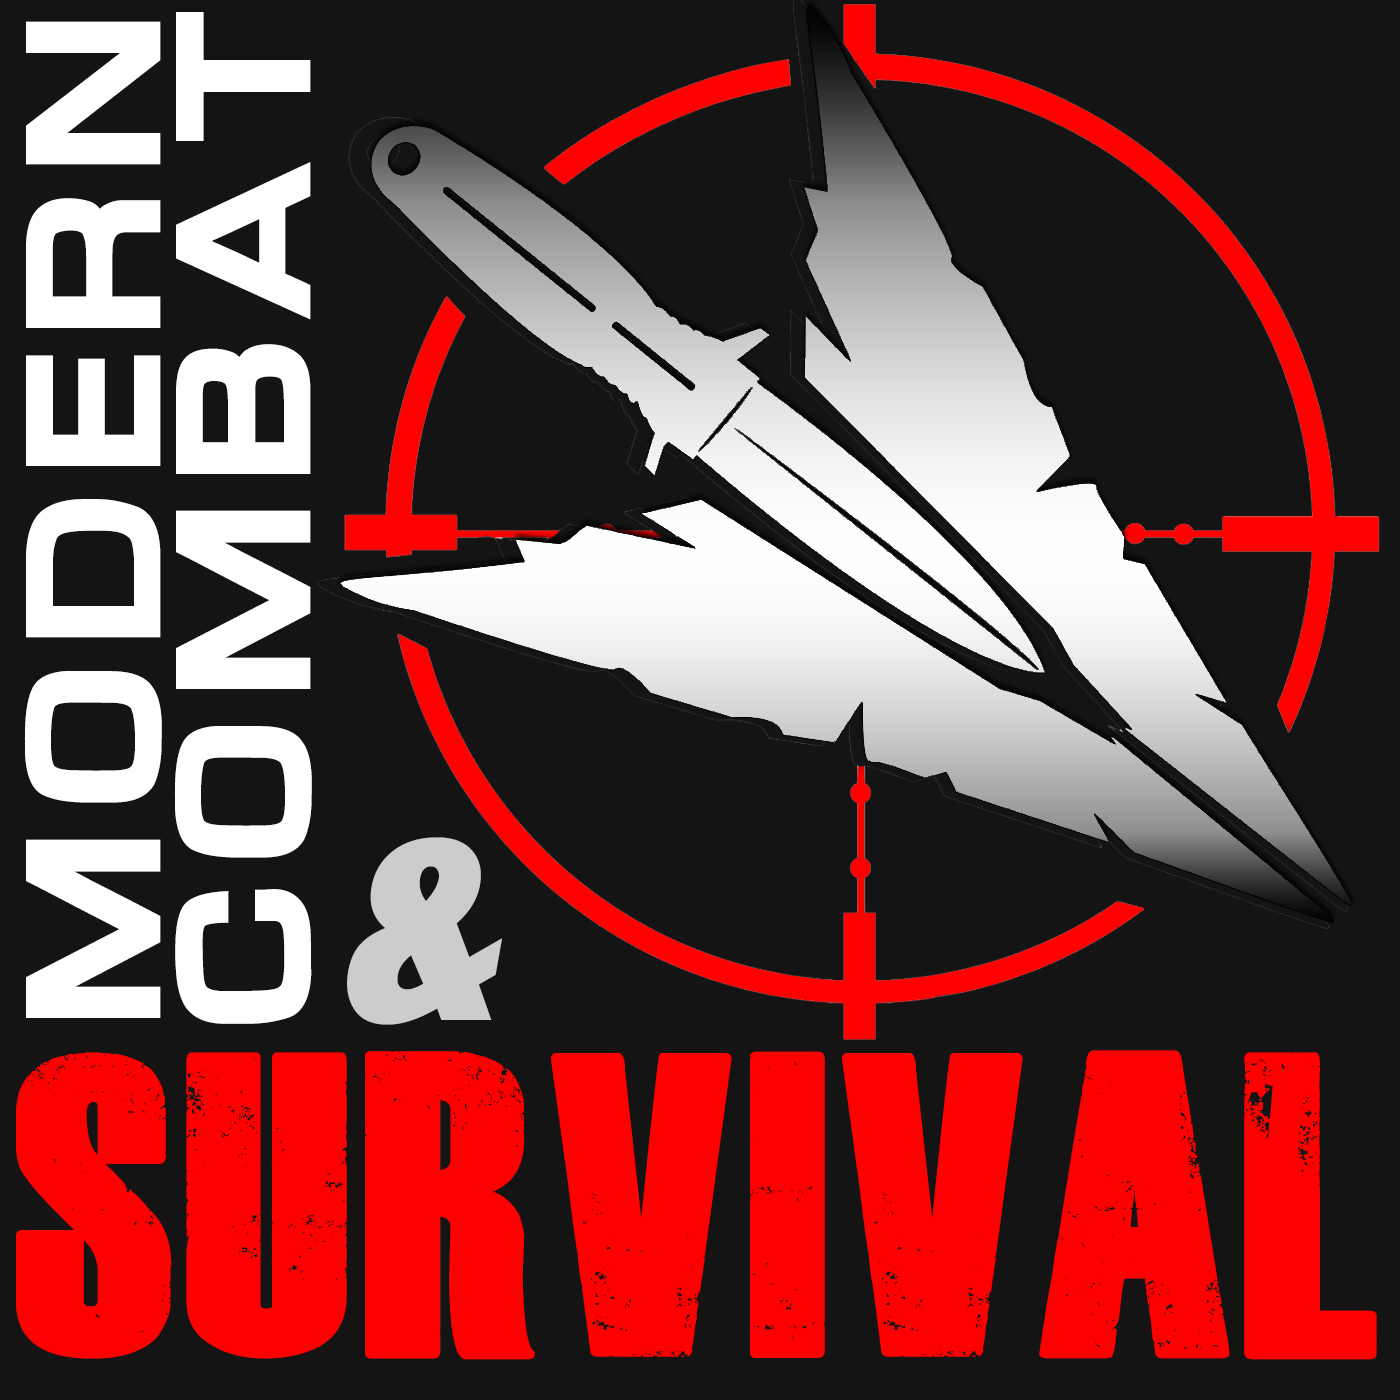 Modern Combat & Survival | Tactical Firearms | Urban Survival podcasts logo